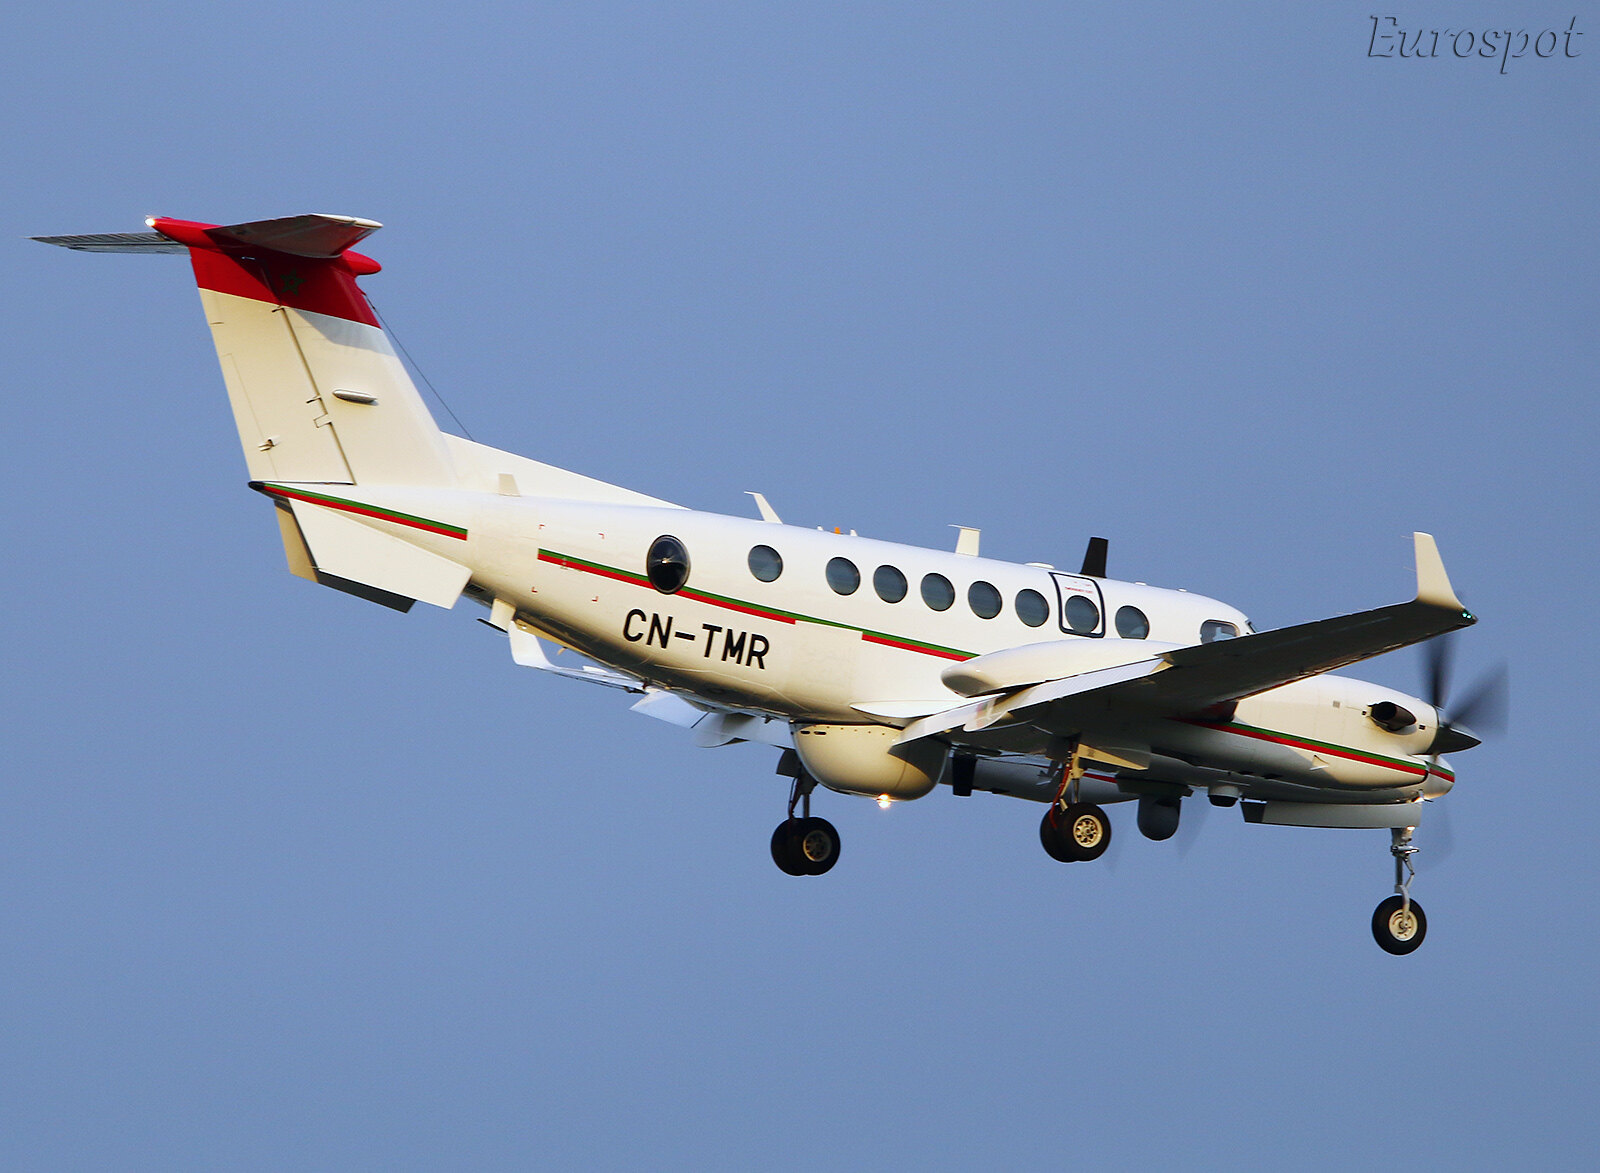 Beechcraft Super King Air 350ER - Page 3 45801424441_e16b587450_h